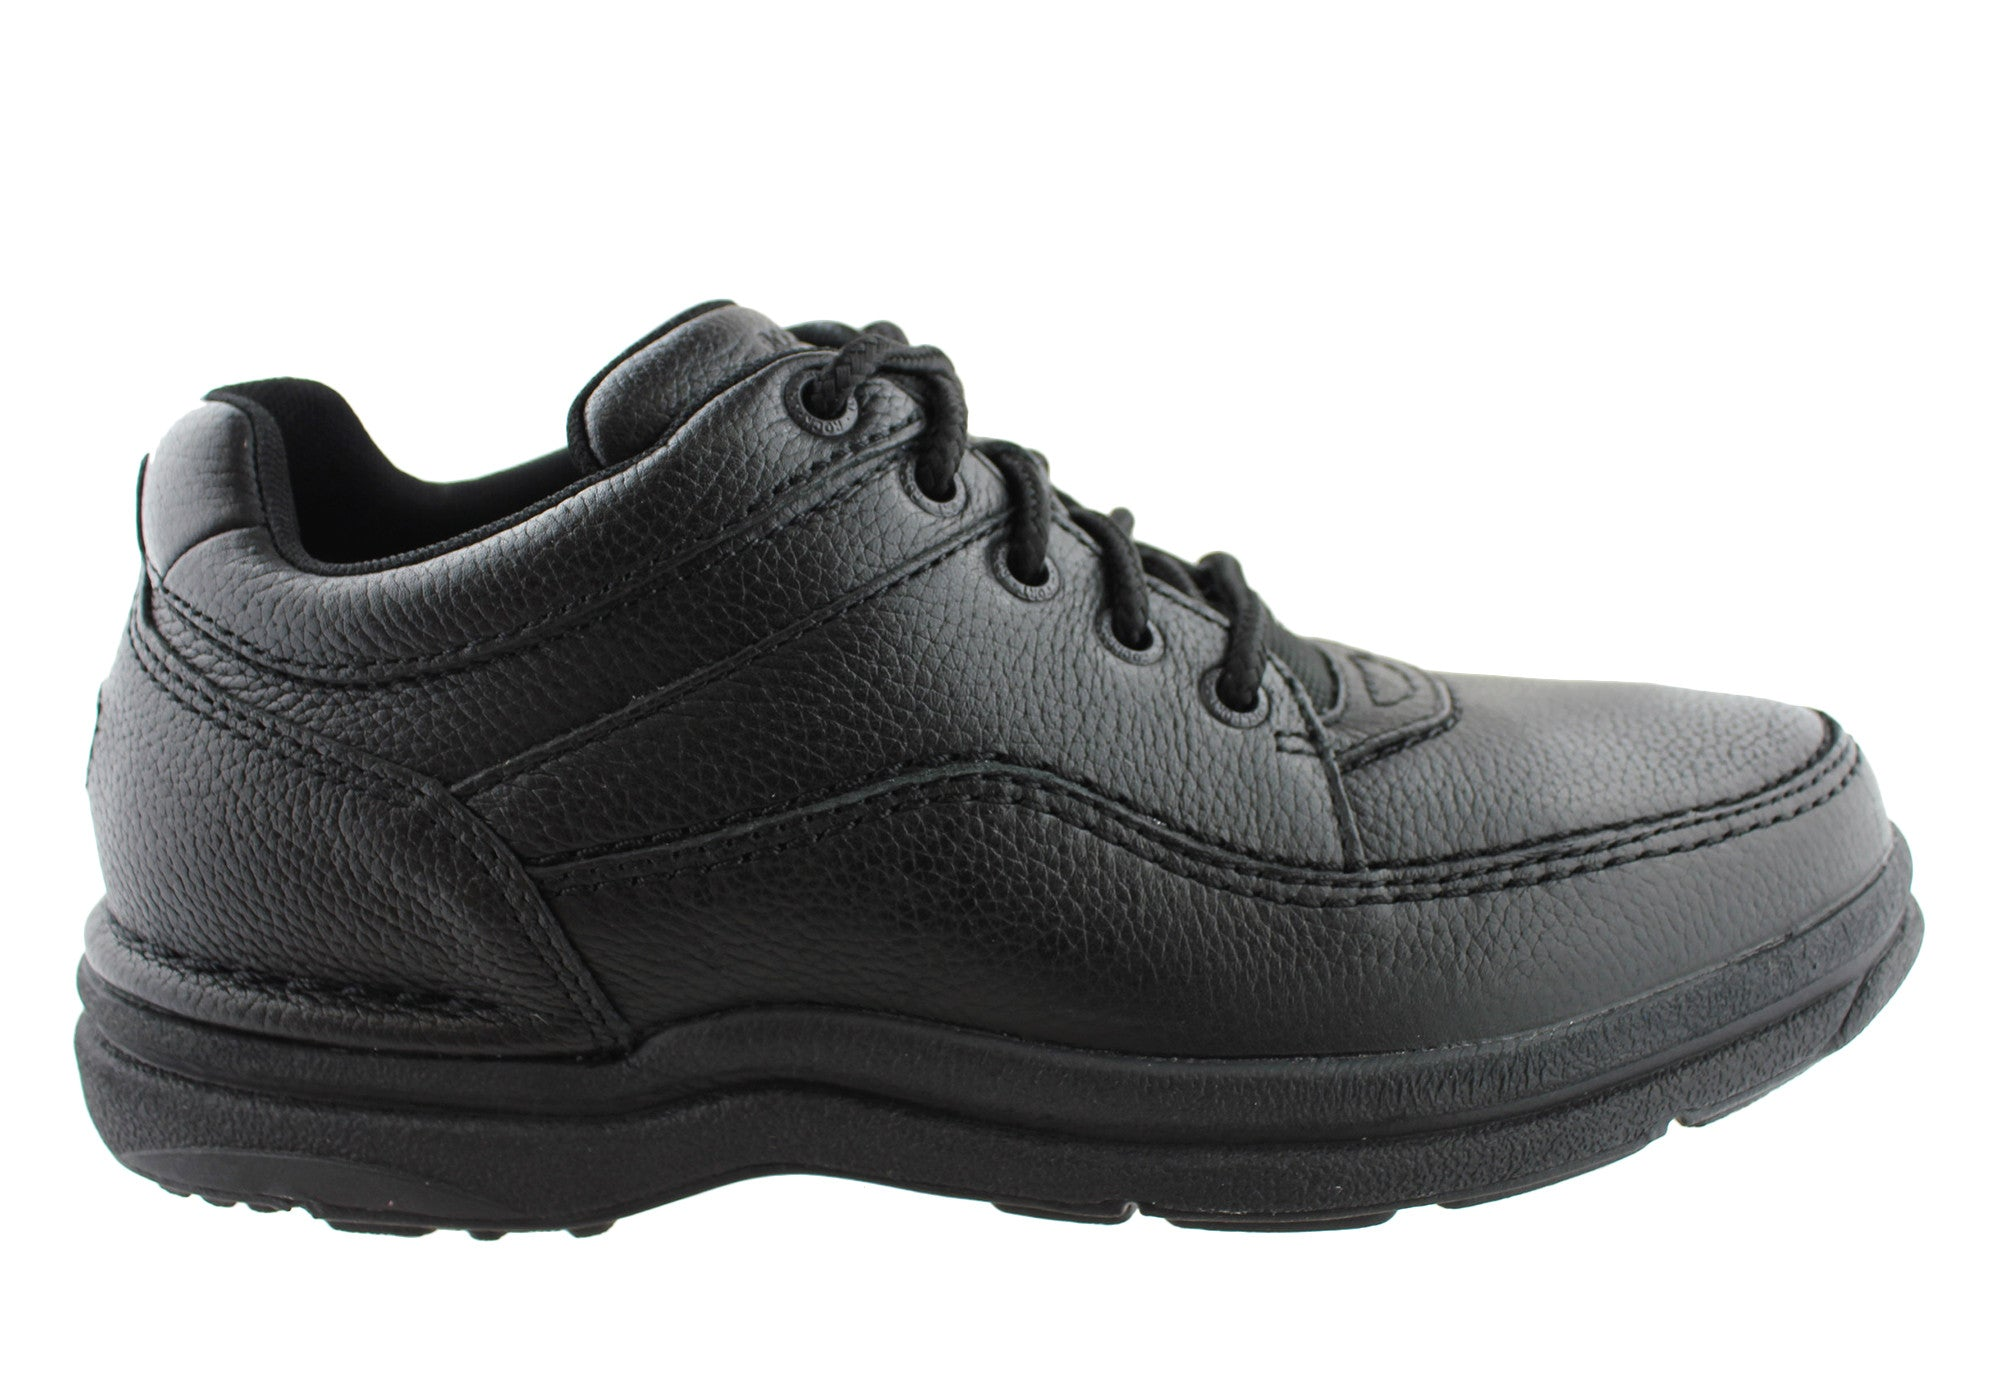 NEW-ROCKPORT-WORLD-TOUR-CLASSIC-MENS-COMFORT-WIDE-FIT-WALKING-SHOES